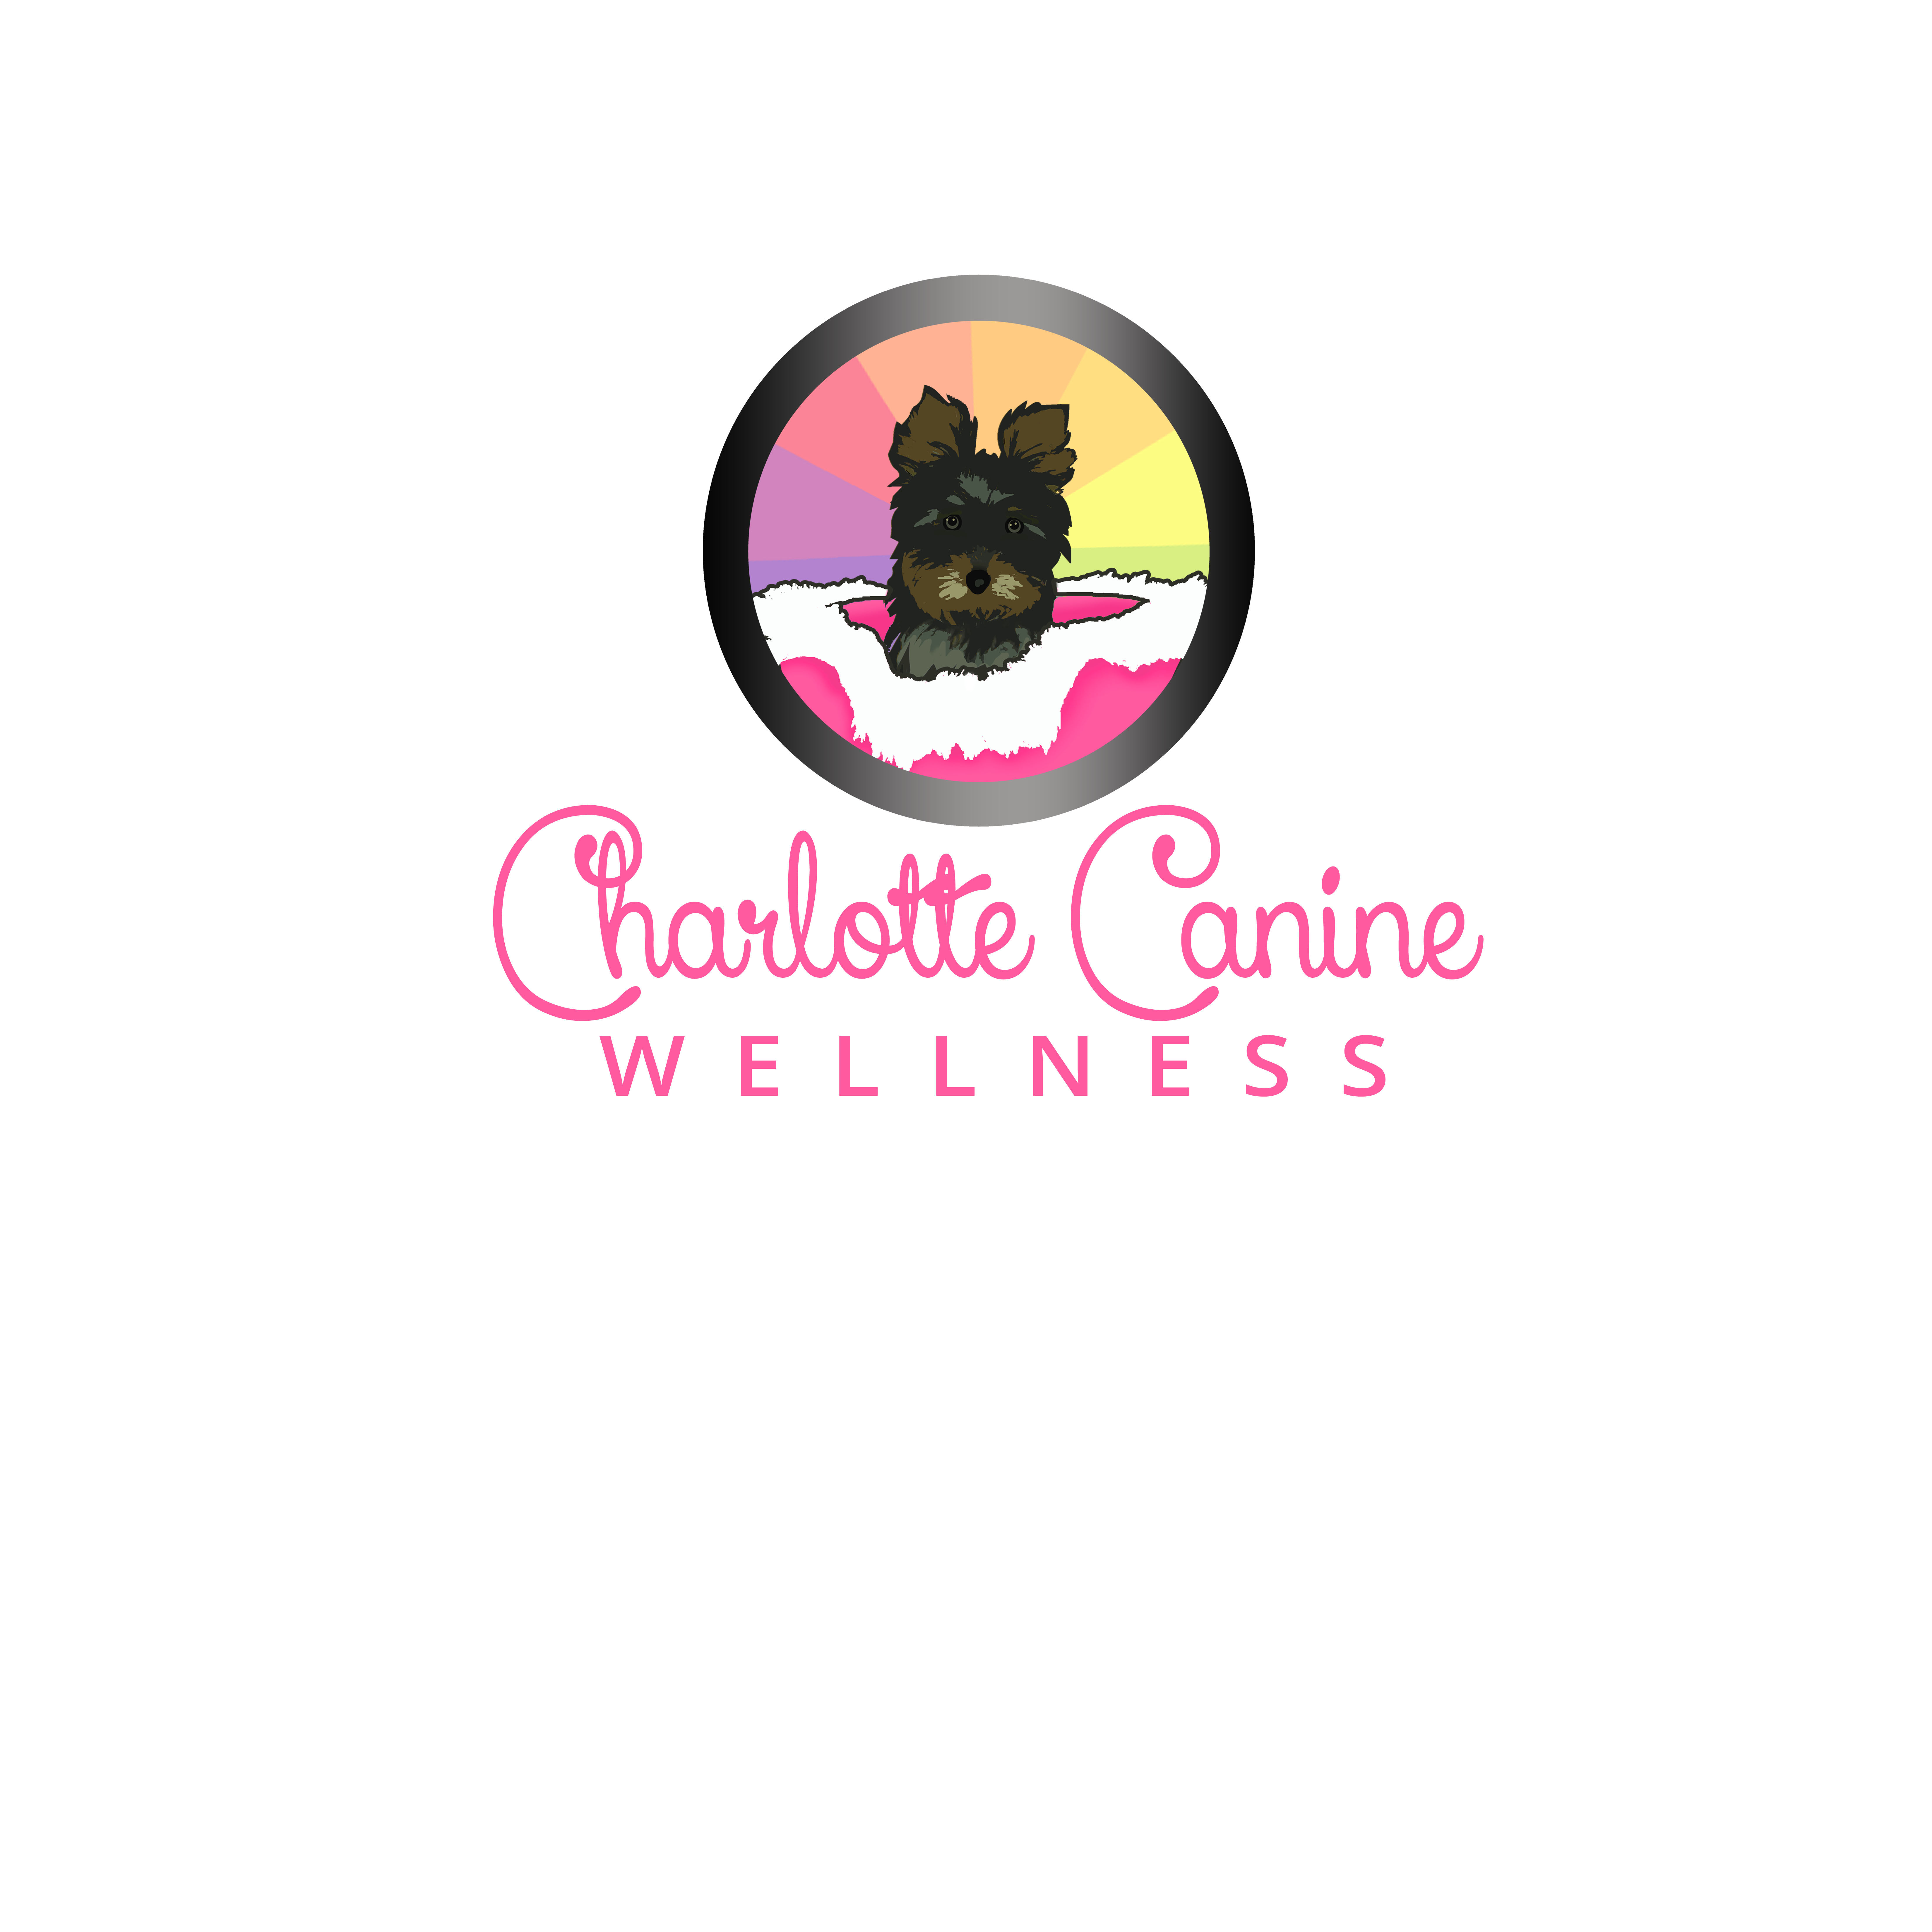 Logo Design by Allan Esclamado - Entry No. 89 in the Logo Design Contest New Logo Design for Charlotte Canine Wellness.